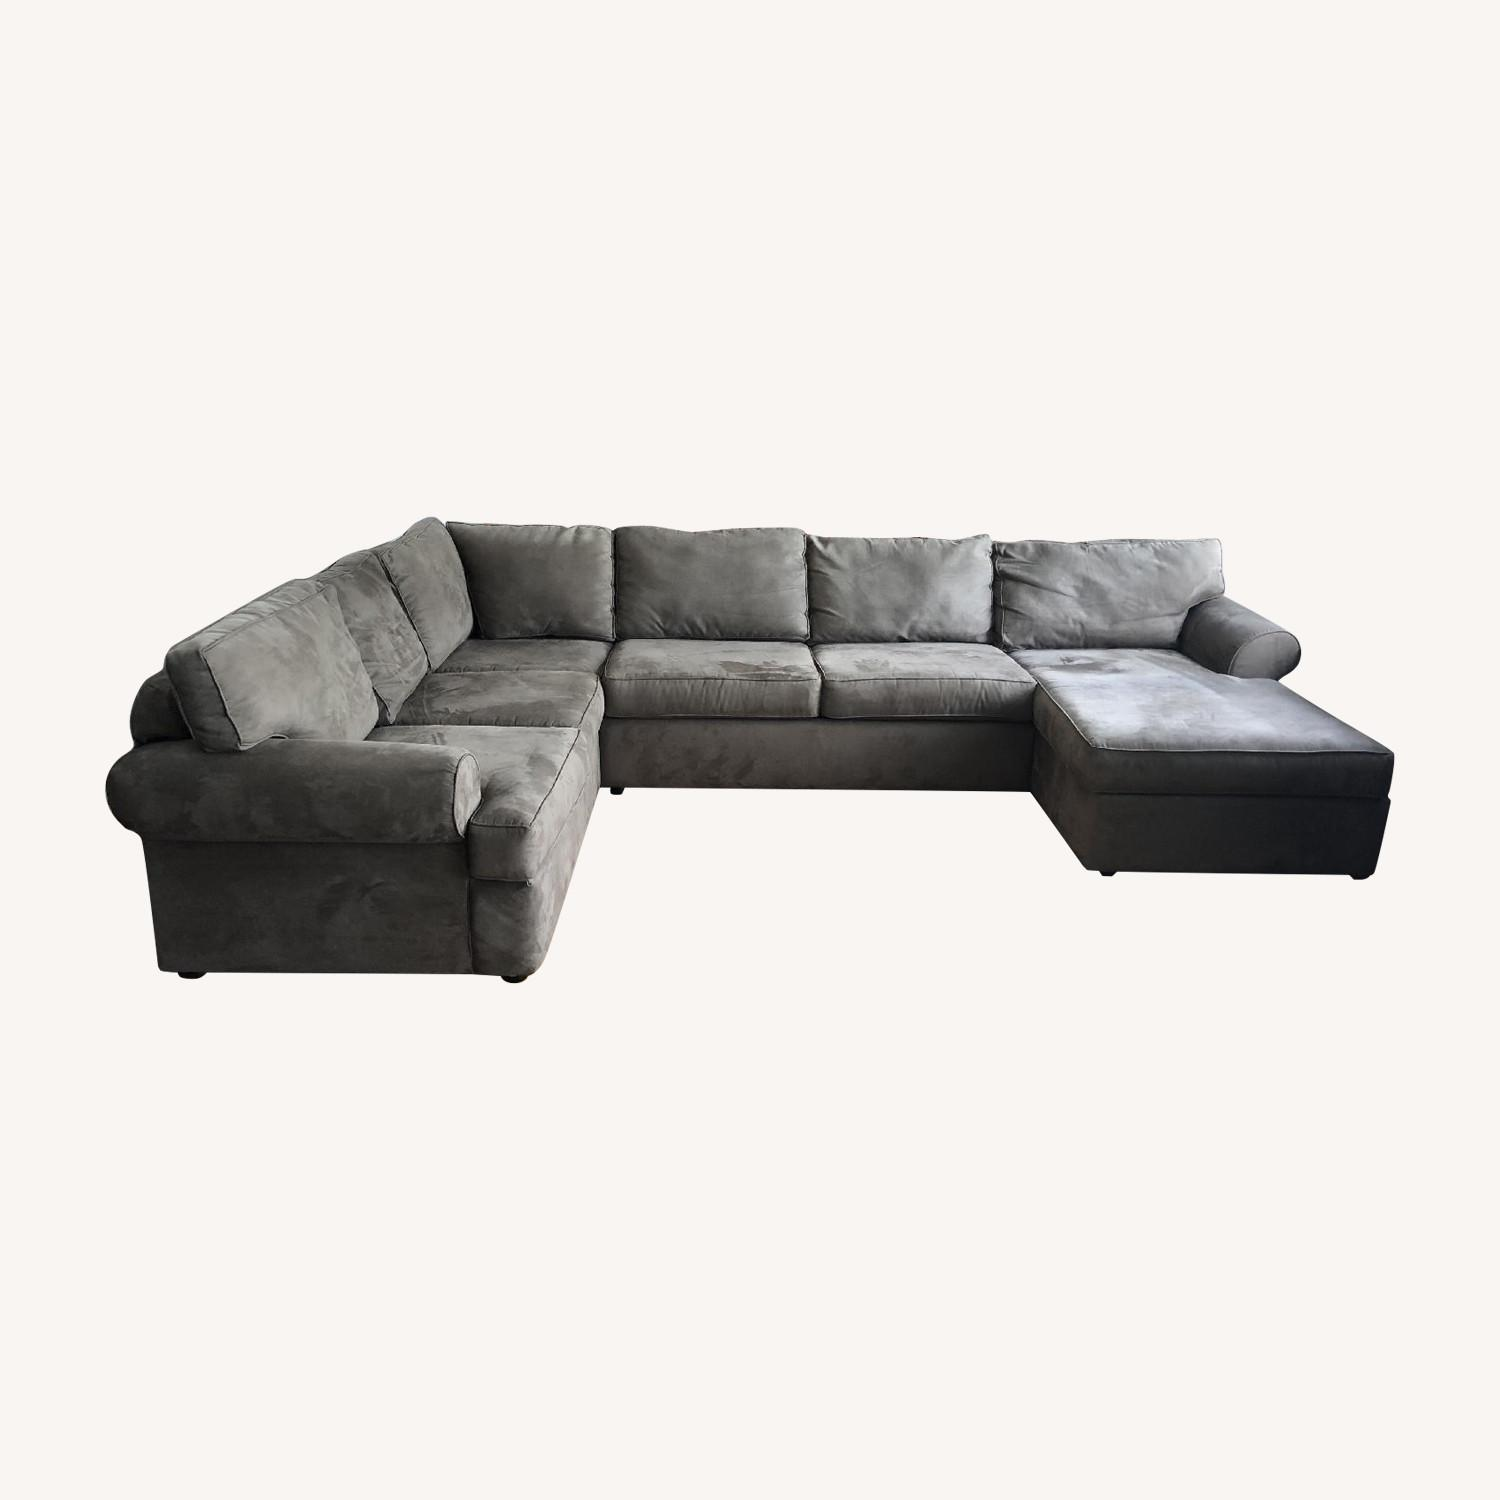 Jennifer Convertible Milfor 3-Piece Sectional Sofa - image-0